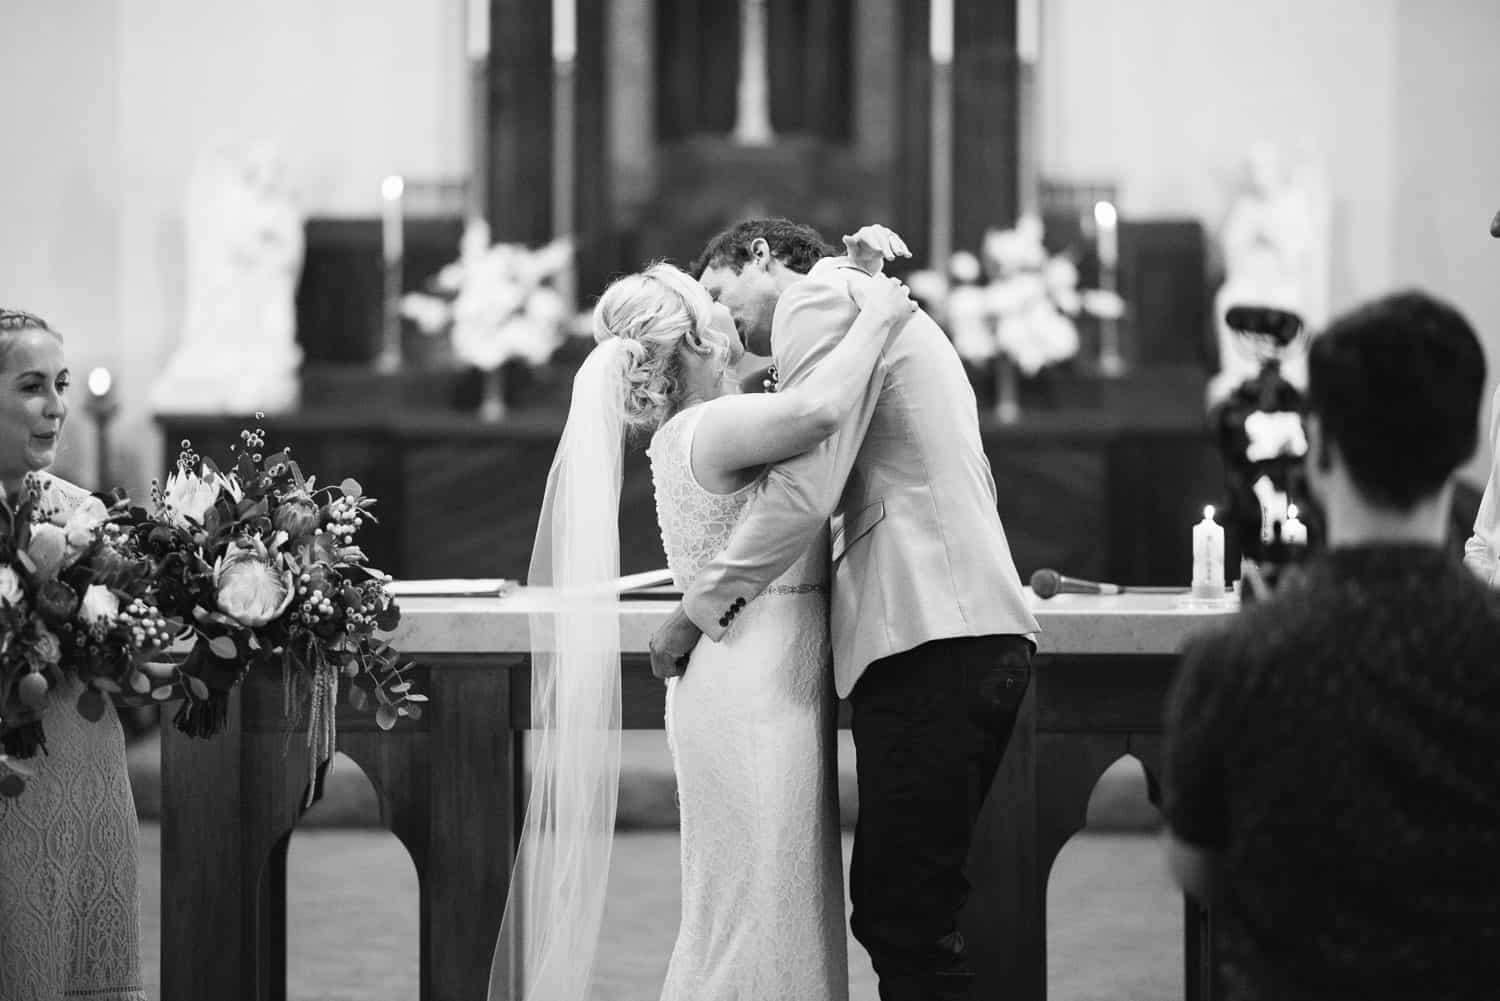 First kiss at St Brendan's church